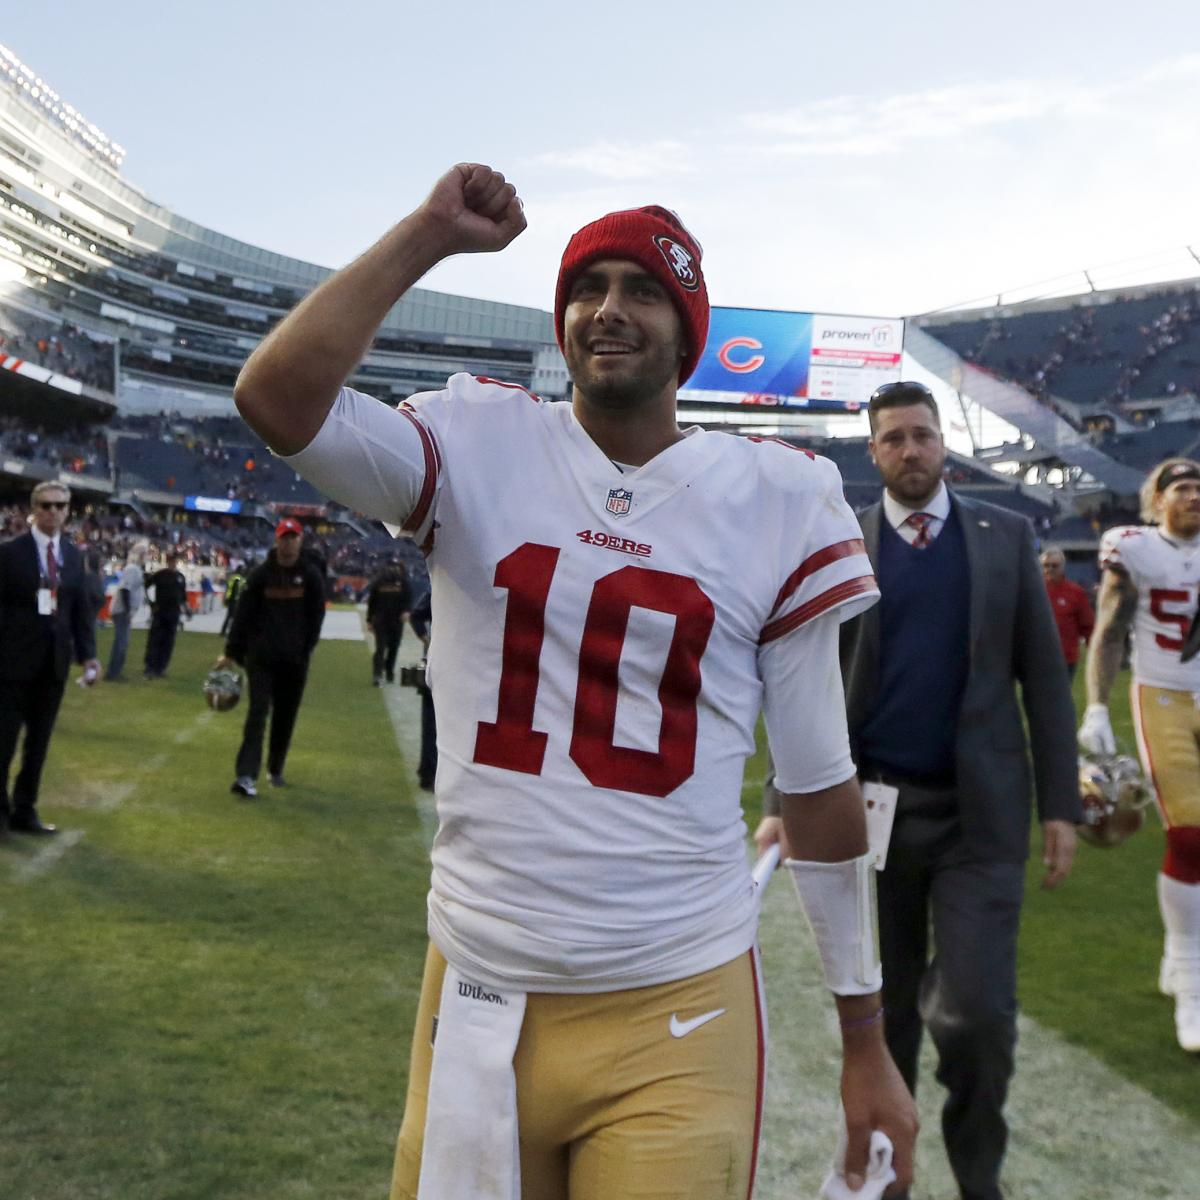 Nfl1000 Rookie Review From Week 9: NFL1000 Week 13 Notebook: Is Jimmy Garoppolo The Answer